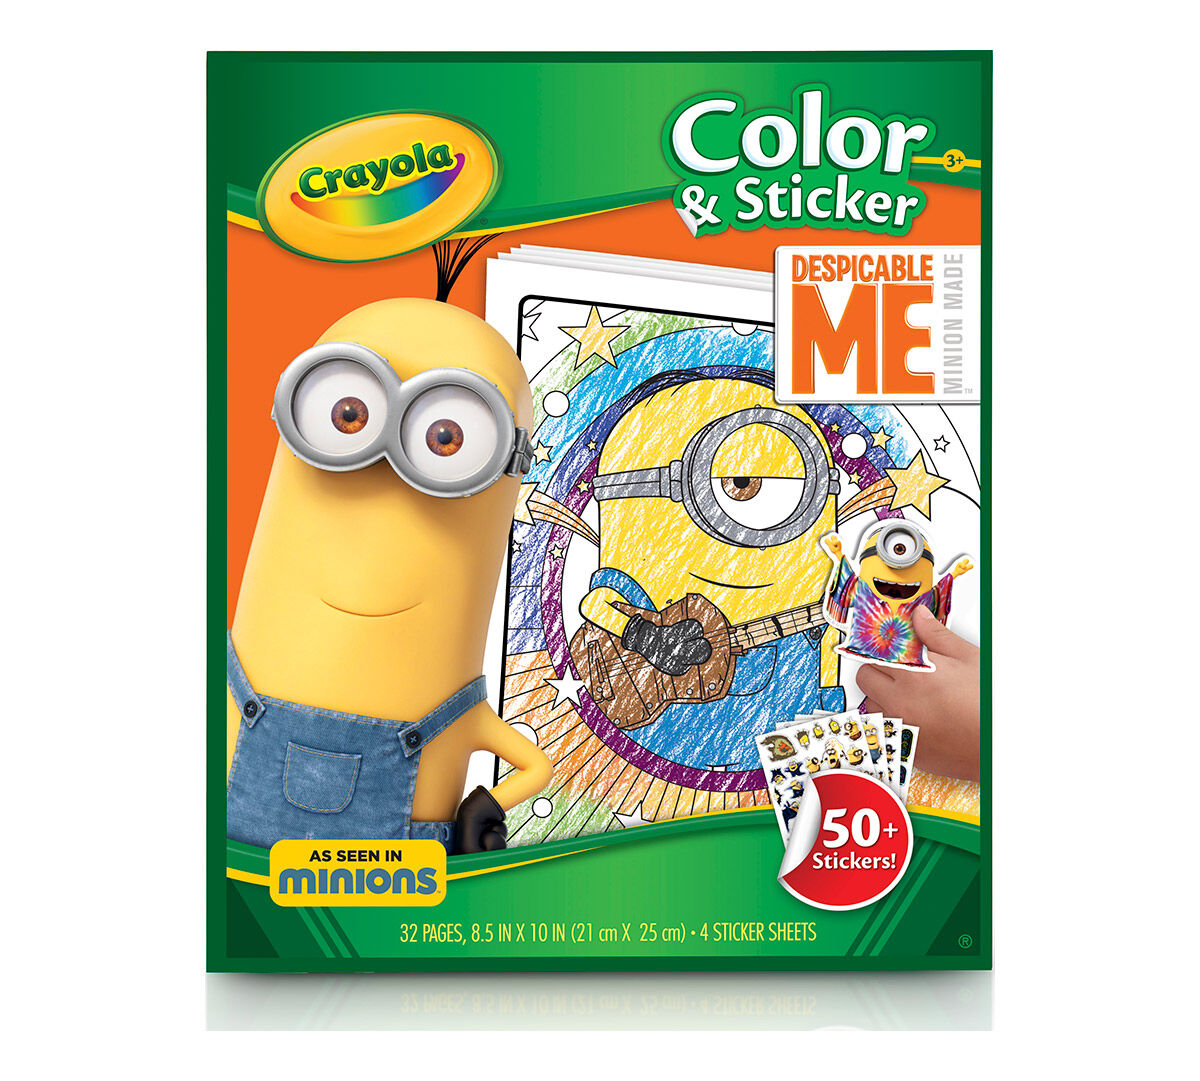 crayola color u0026 sticker despicable me edition art activity